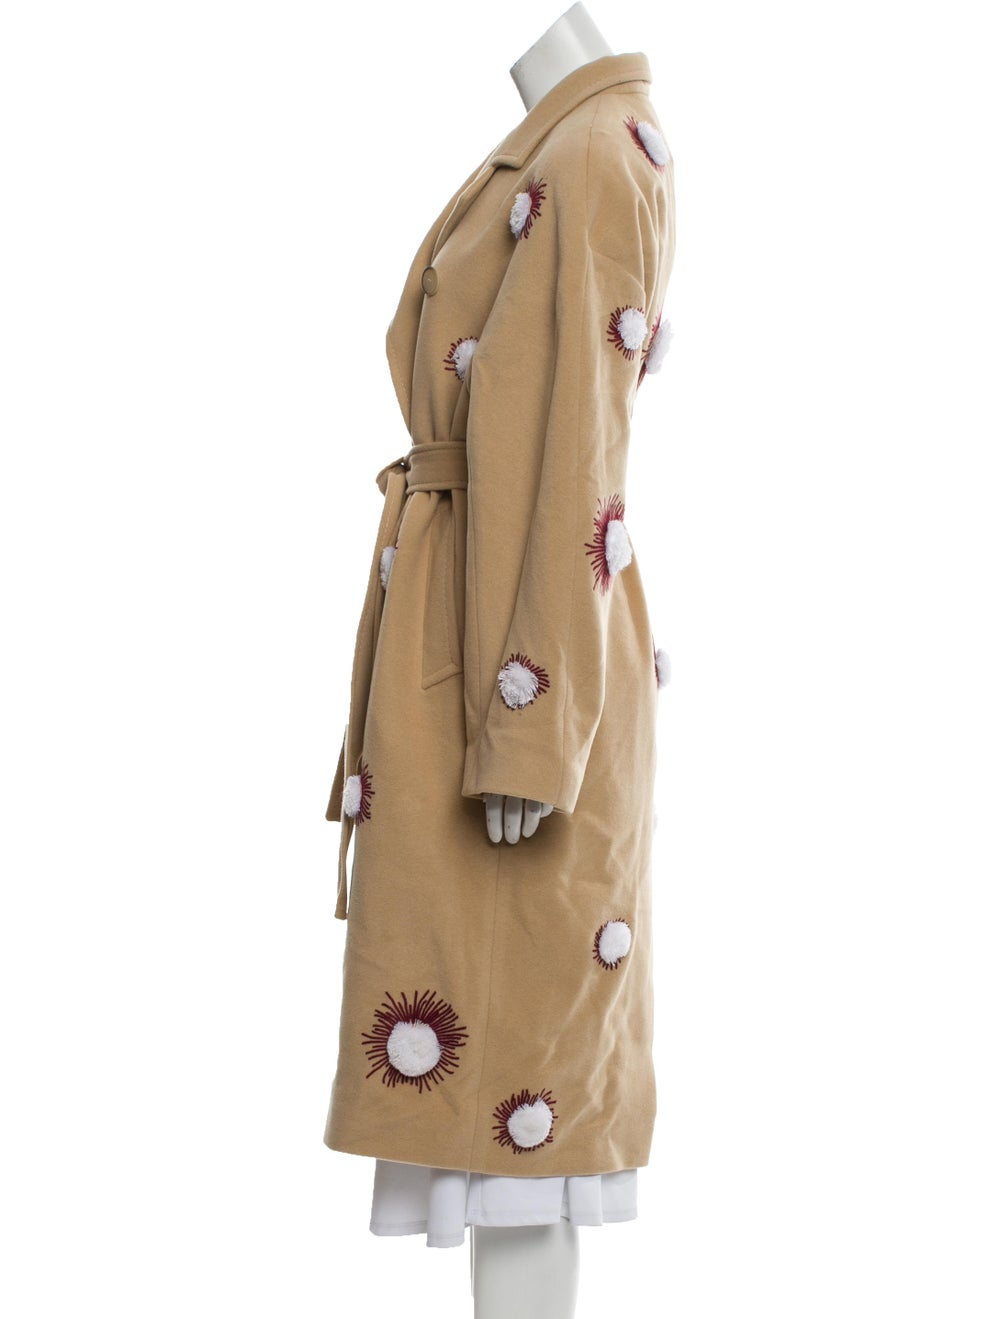 March 11 Embroidered Long Coat - image 2